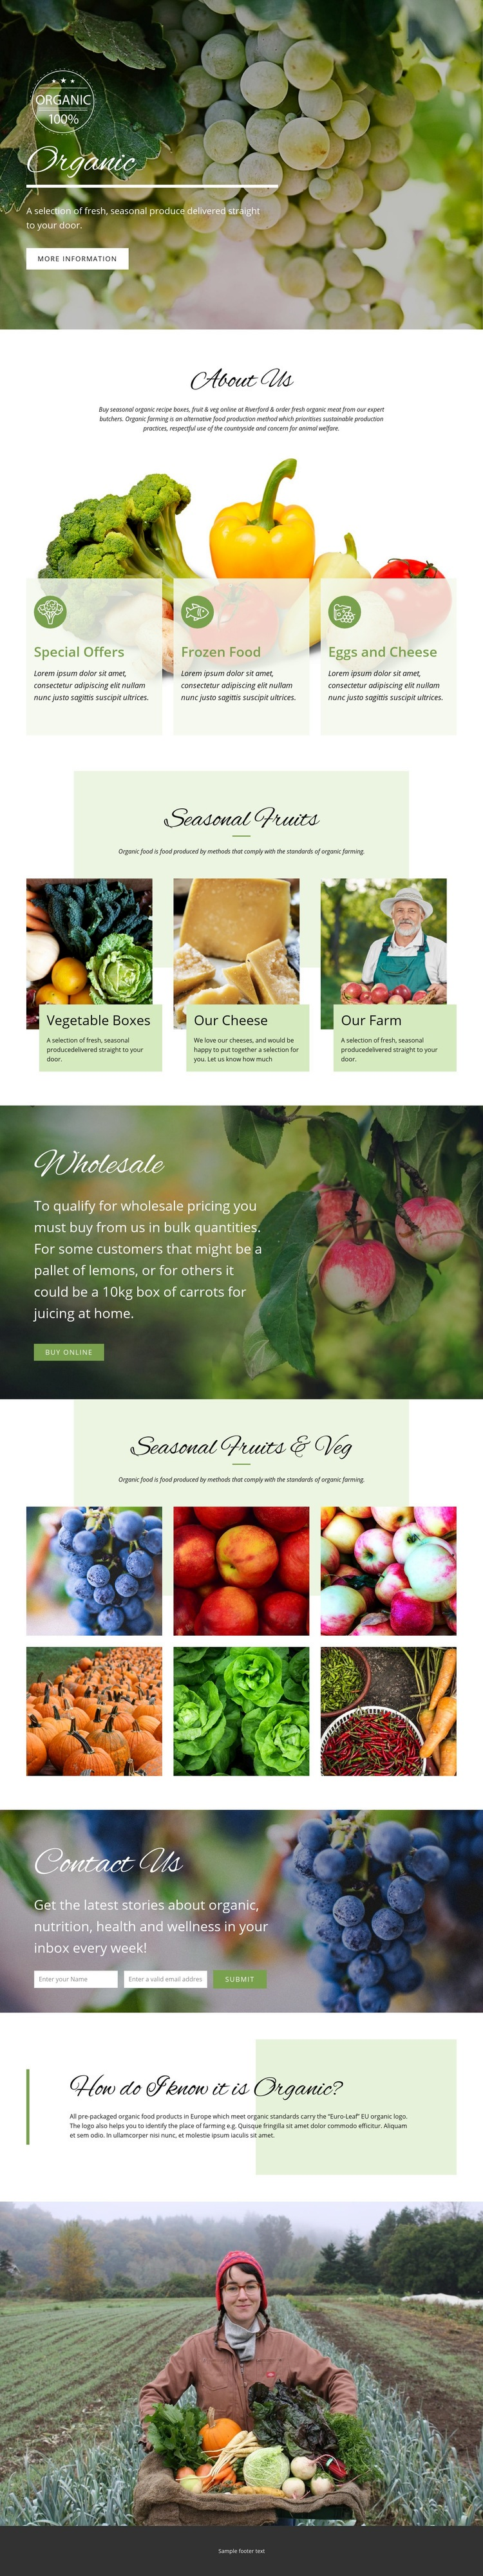 Healthier with organic food Html Code Example